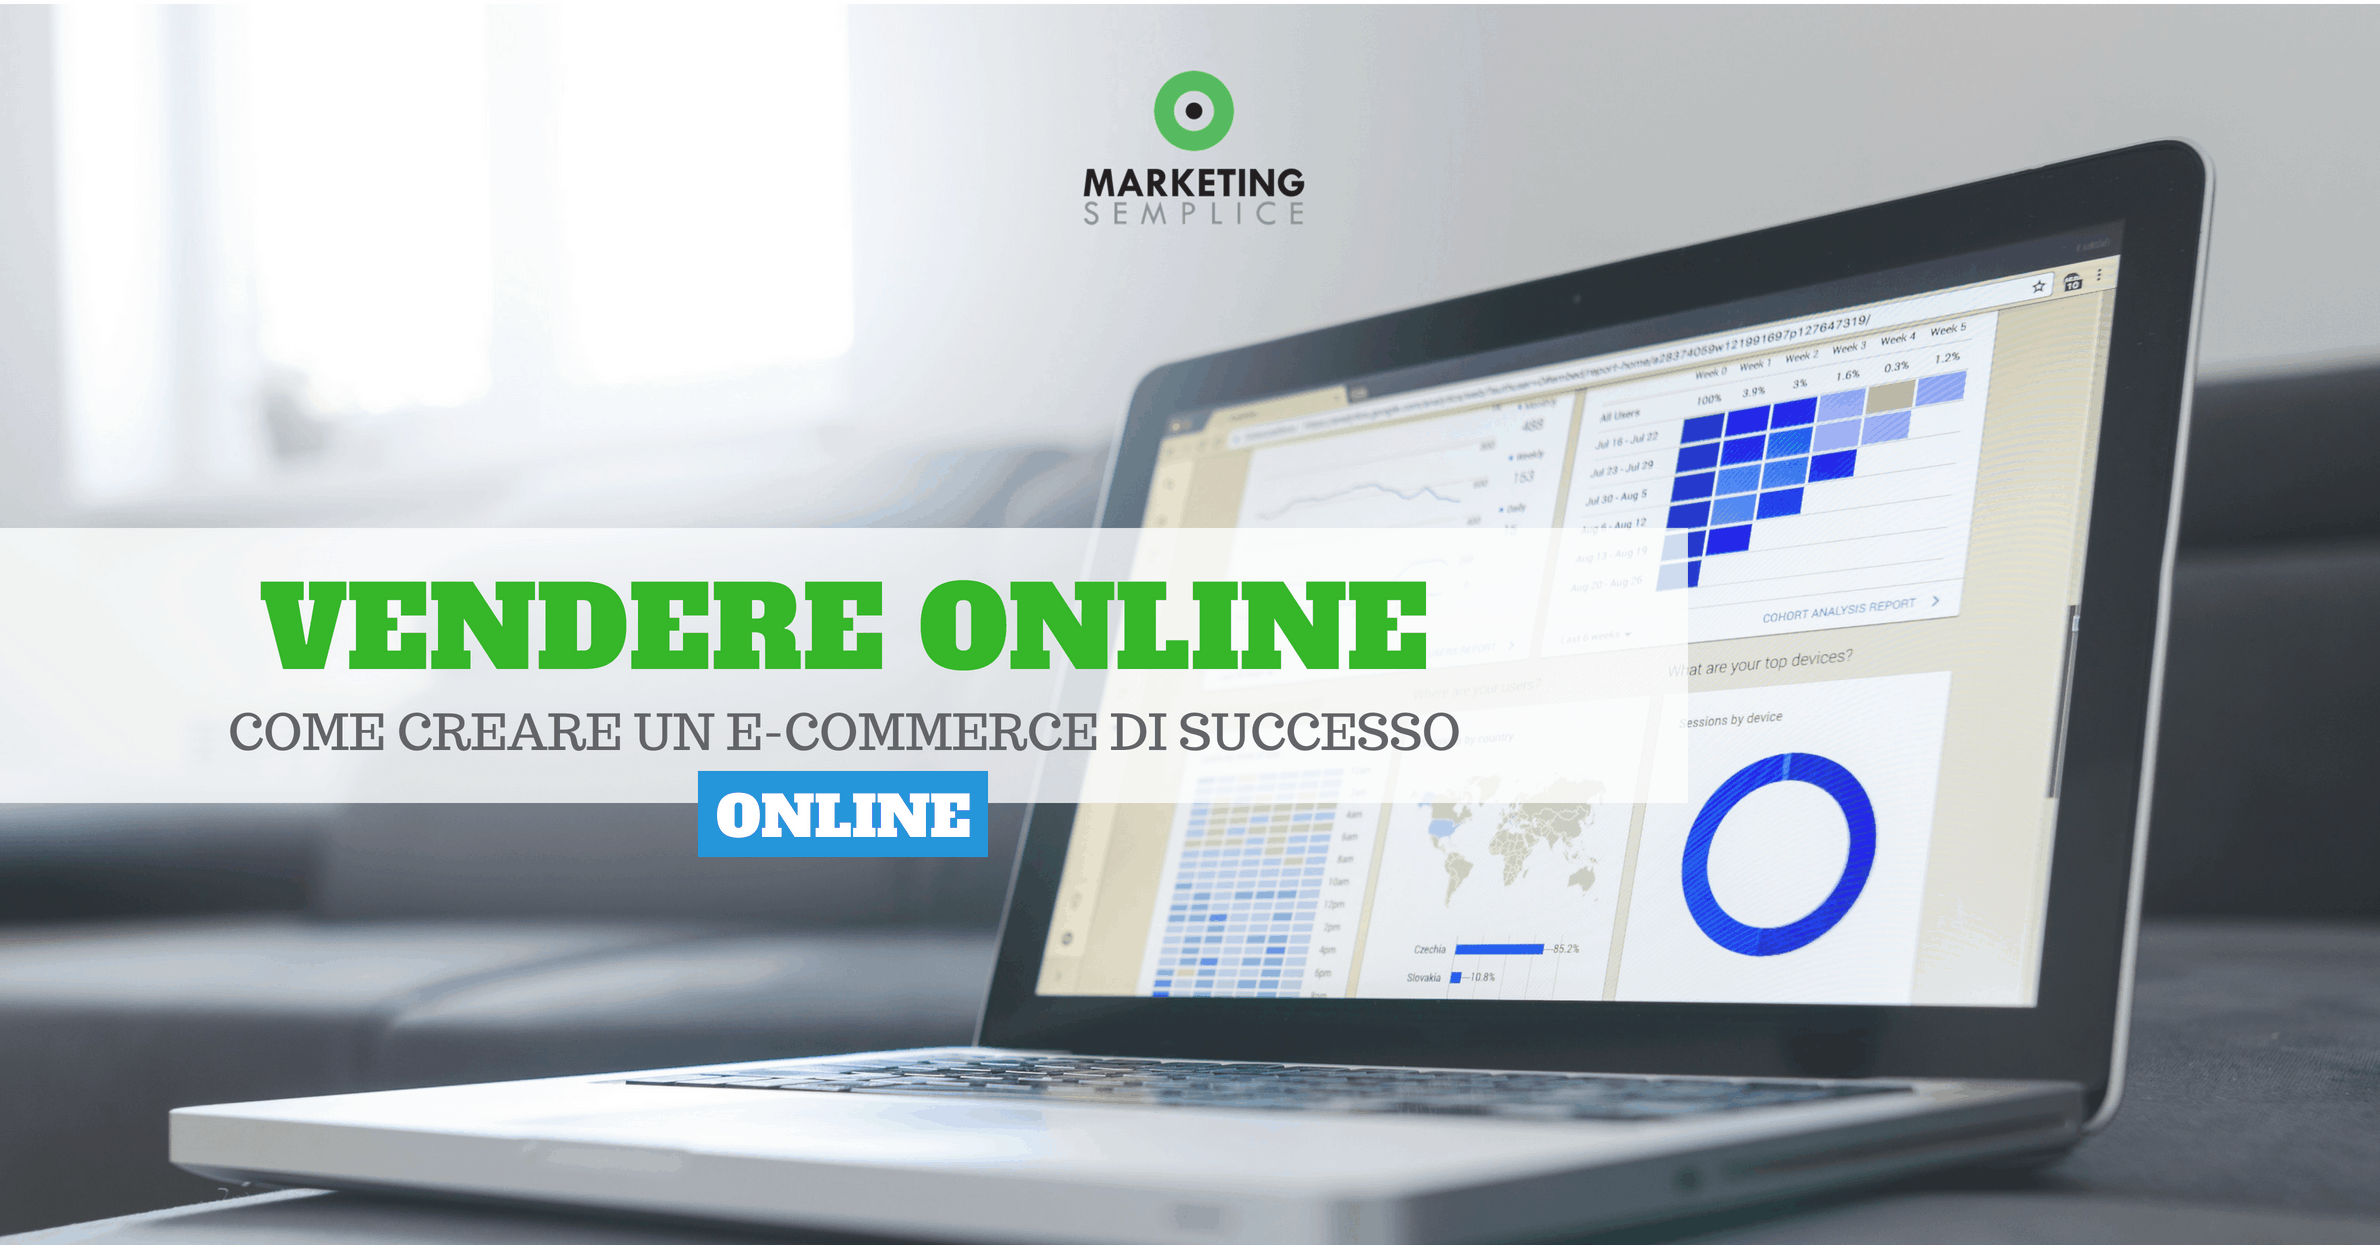 Vendere Online con l'e-commerce [intervista all'esperto]